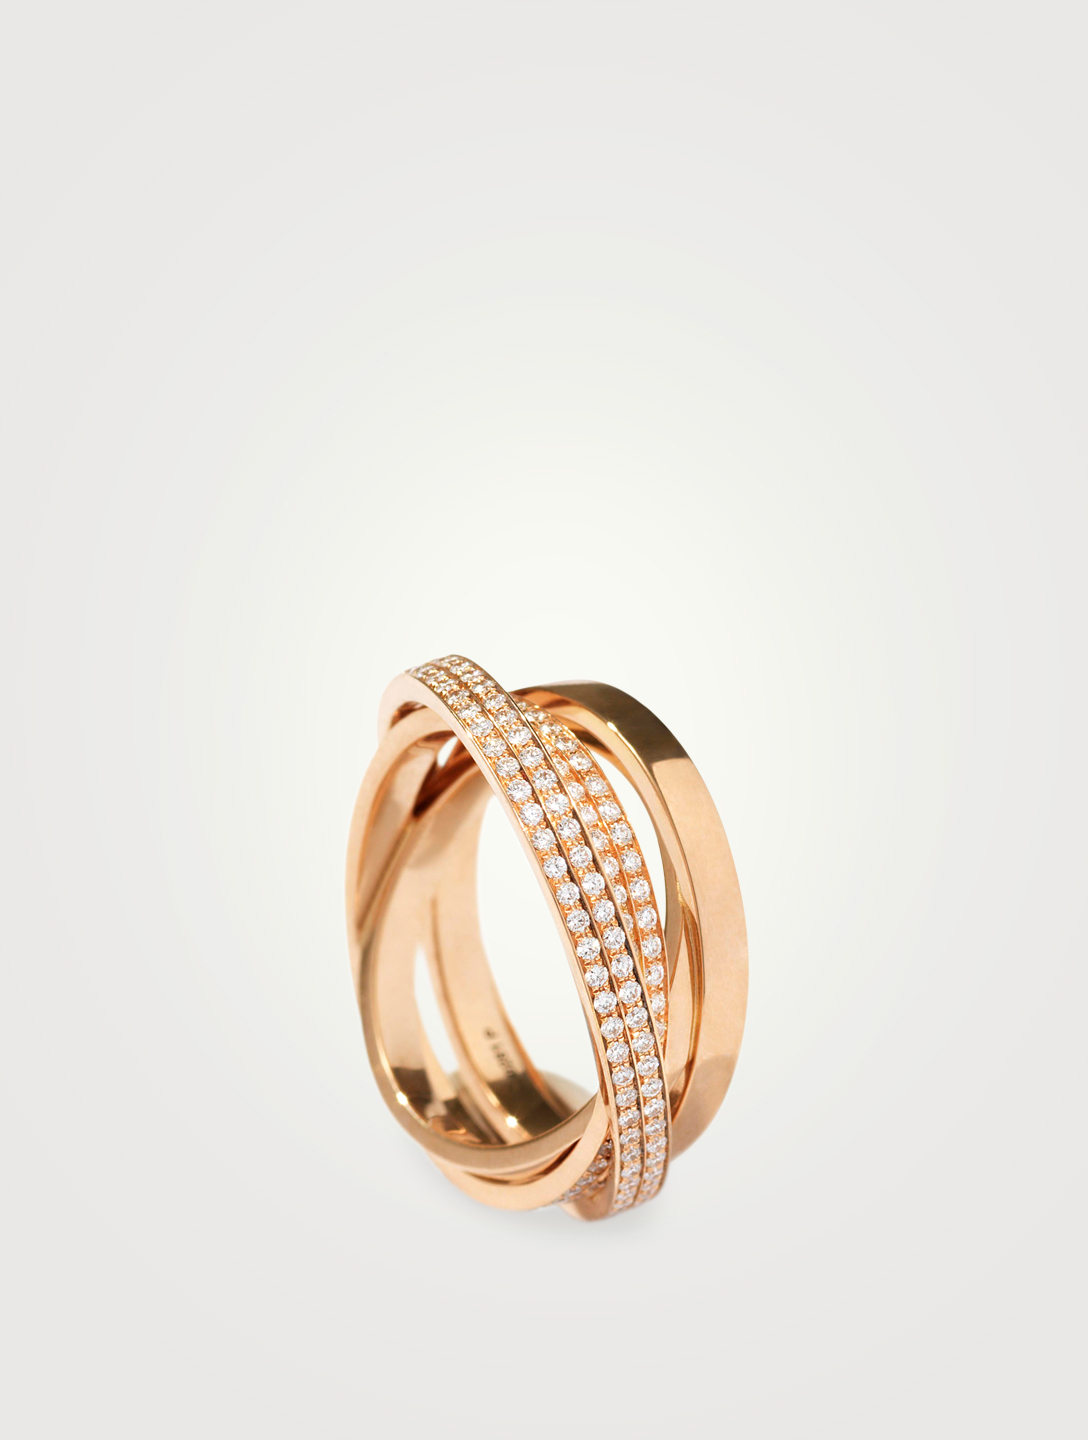 REPOSSI Technical Berbère 18K Rose Gold Four Band Twisted Ring With Diamonds Womens Metallic